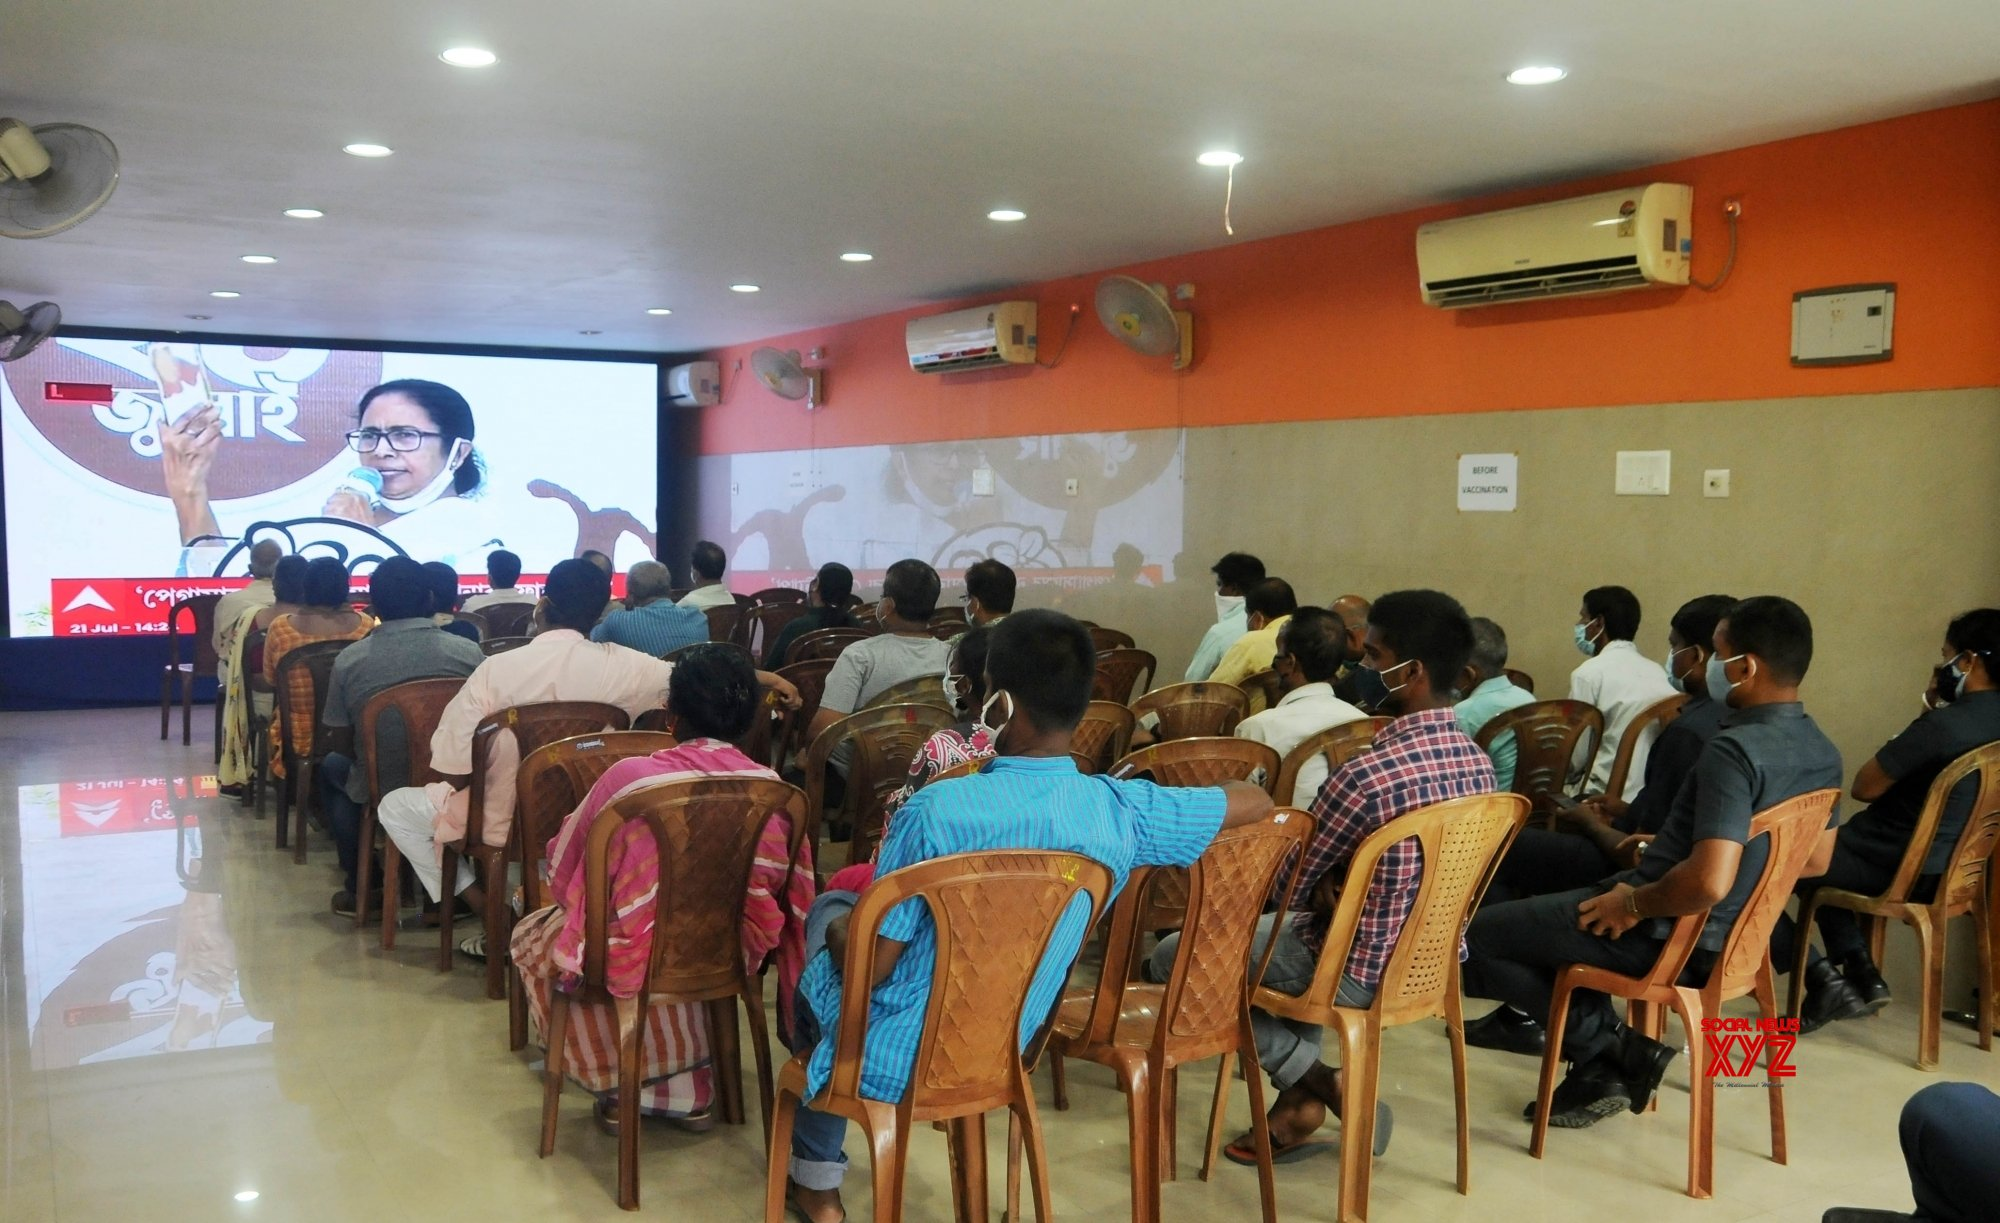 Kolkata: TMC supporters watching on big screen at various places in City, TMC supremo and West Bengal Chief Minister Mamata Banerjee's virtual meeting on the occasion of 21 July TMC Martyrs day observation in Kolkata #Gallery